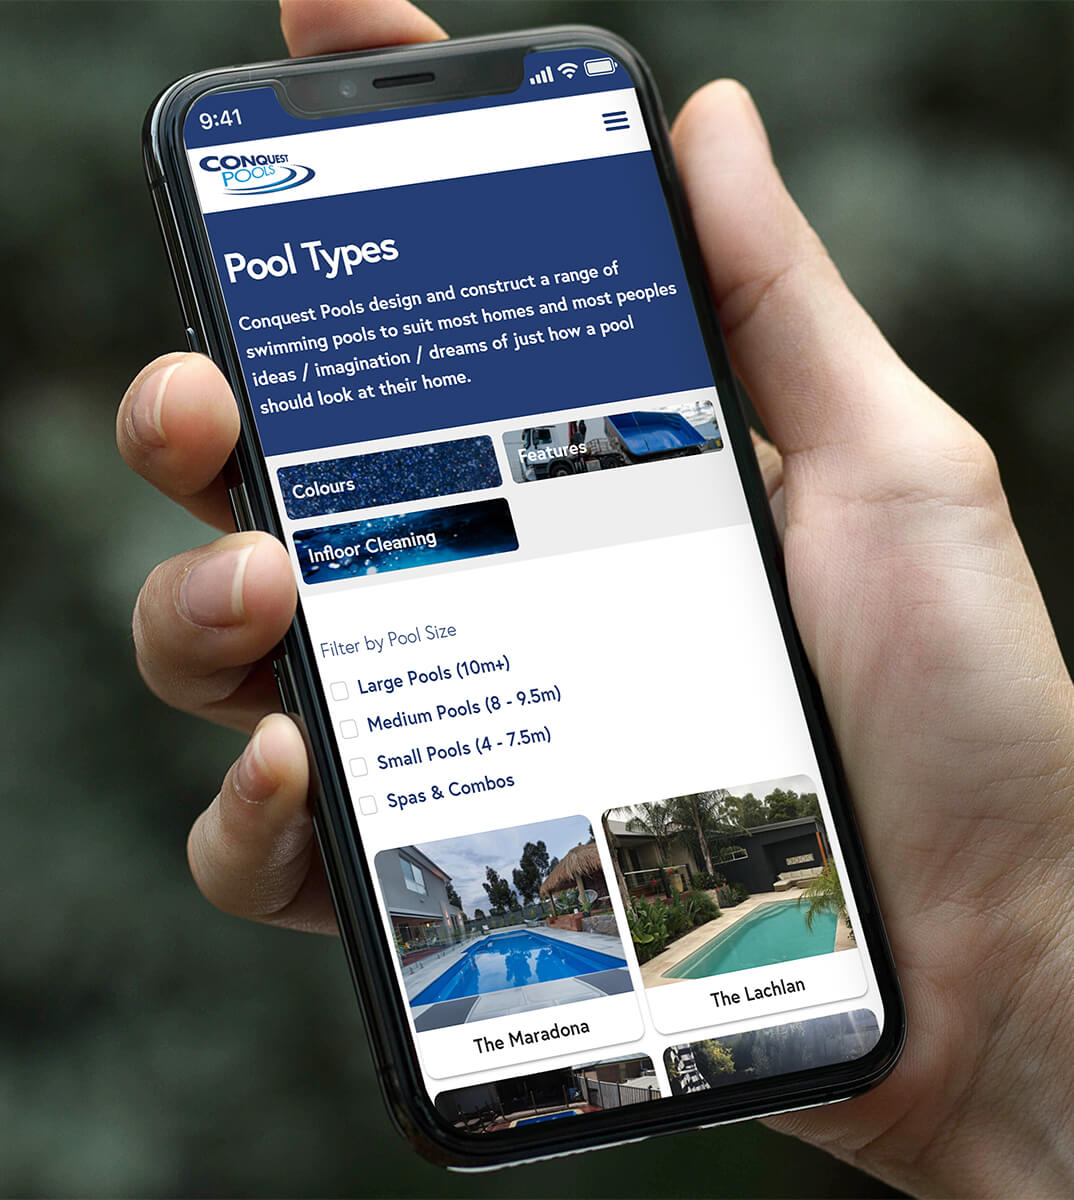 A hand holding a phone with the Conquest Pools website loaded